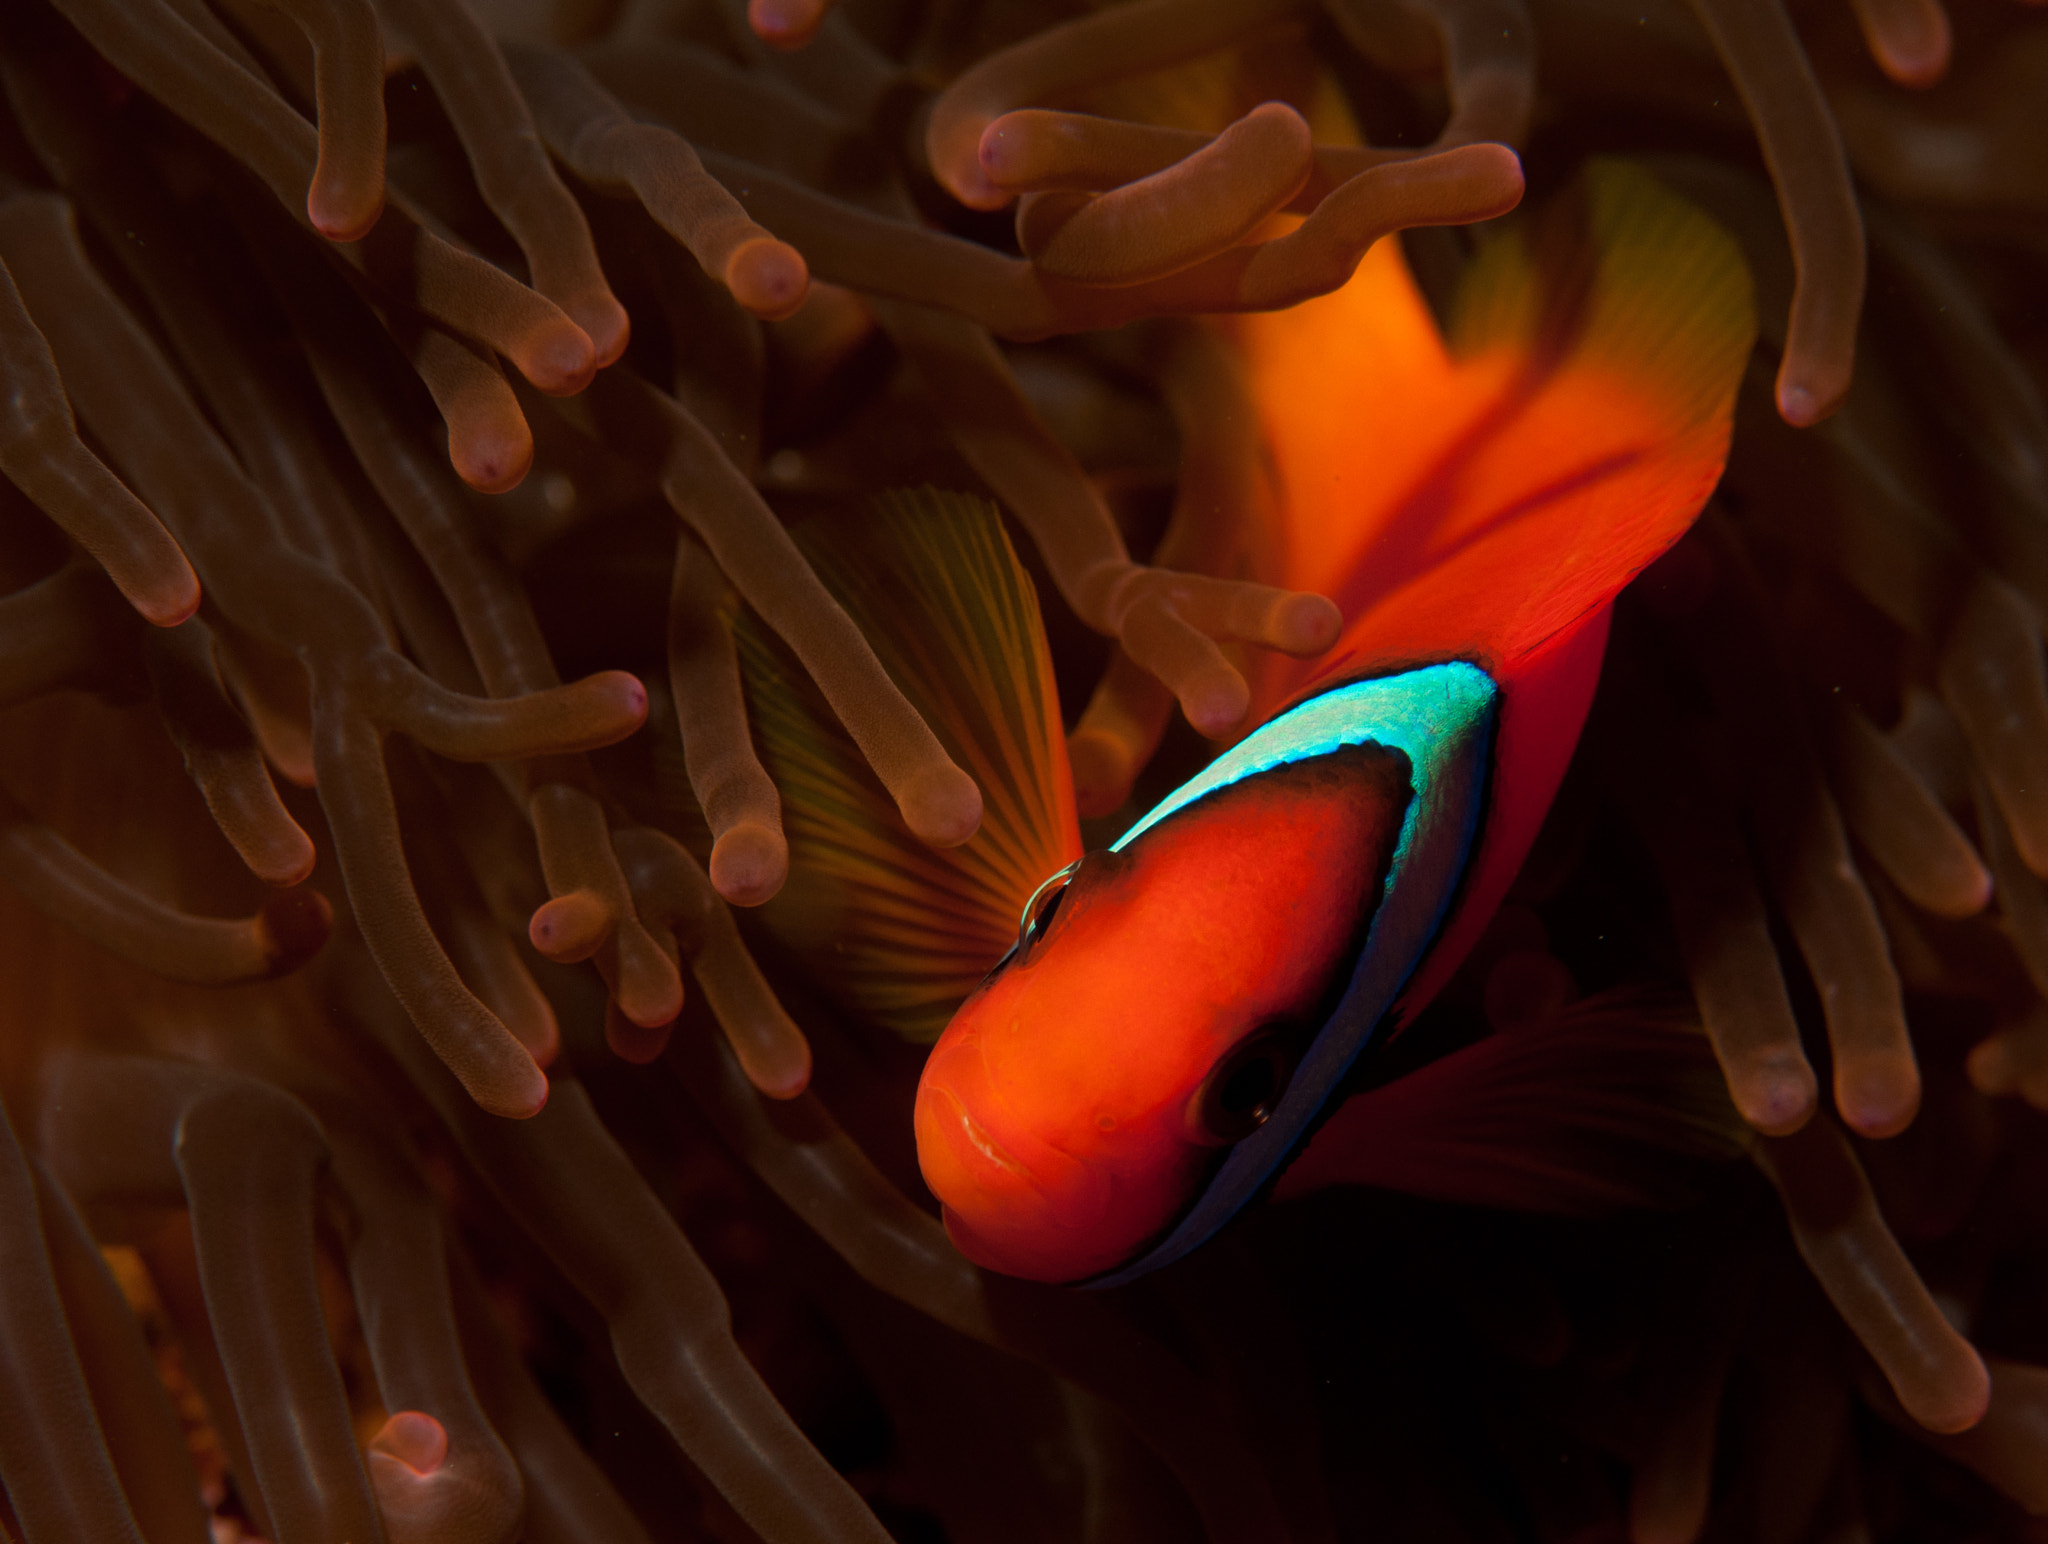 Photograph Tomato anemonefish, Amphiprion frenatus by Shawn  Miller on 500px